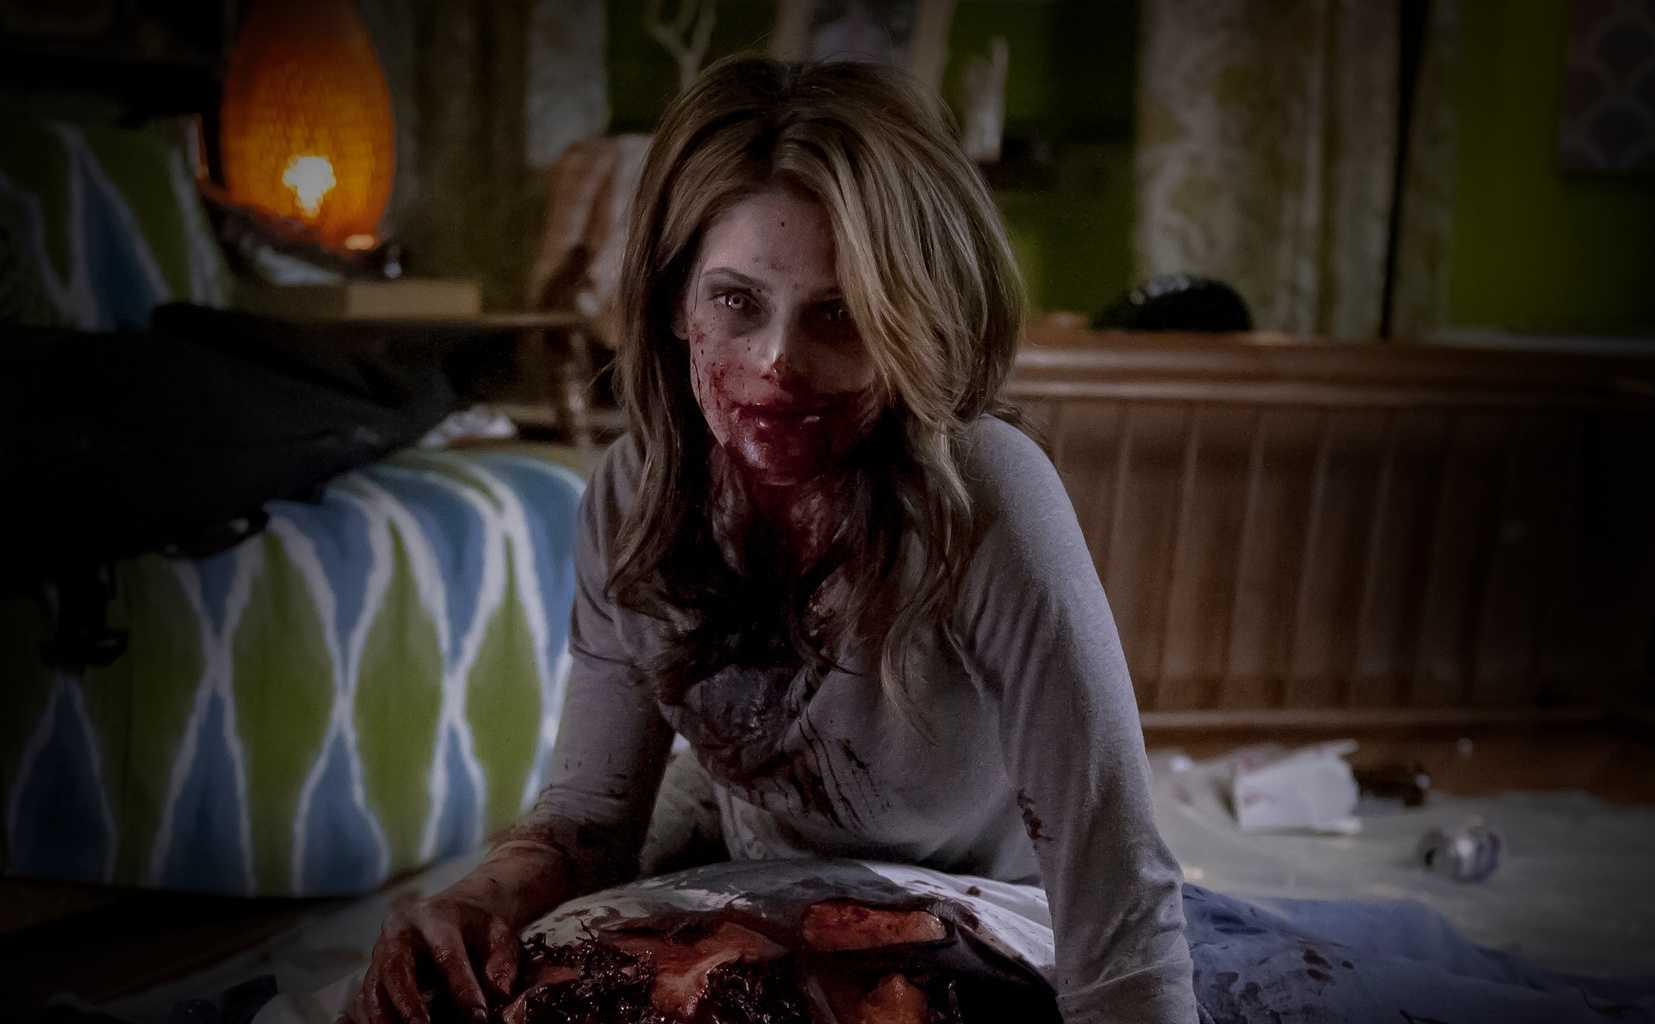 film reviews | movies | features | BRWC The BRWC Review: Burying The Ex